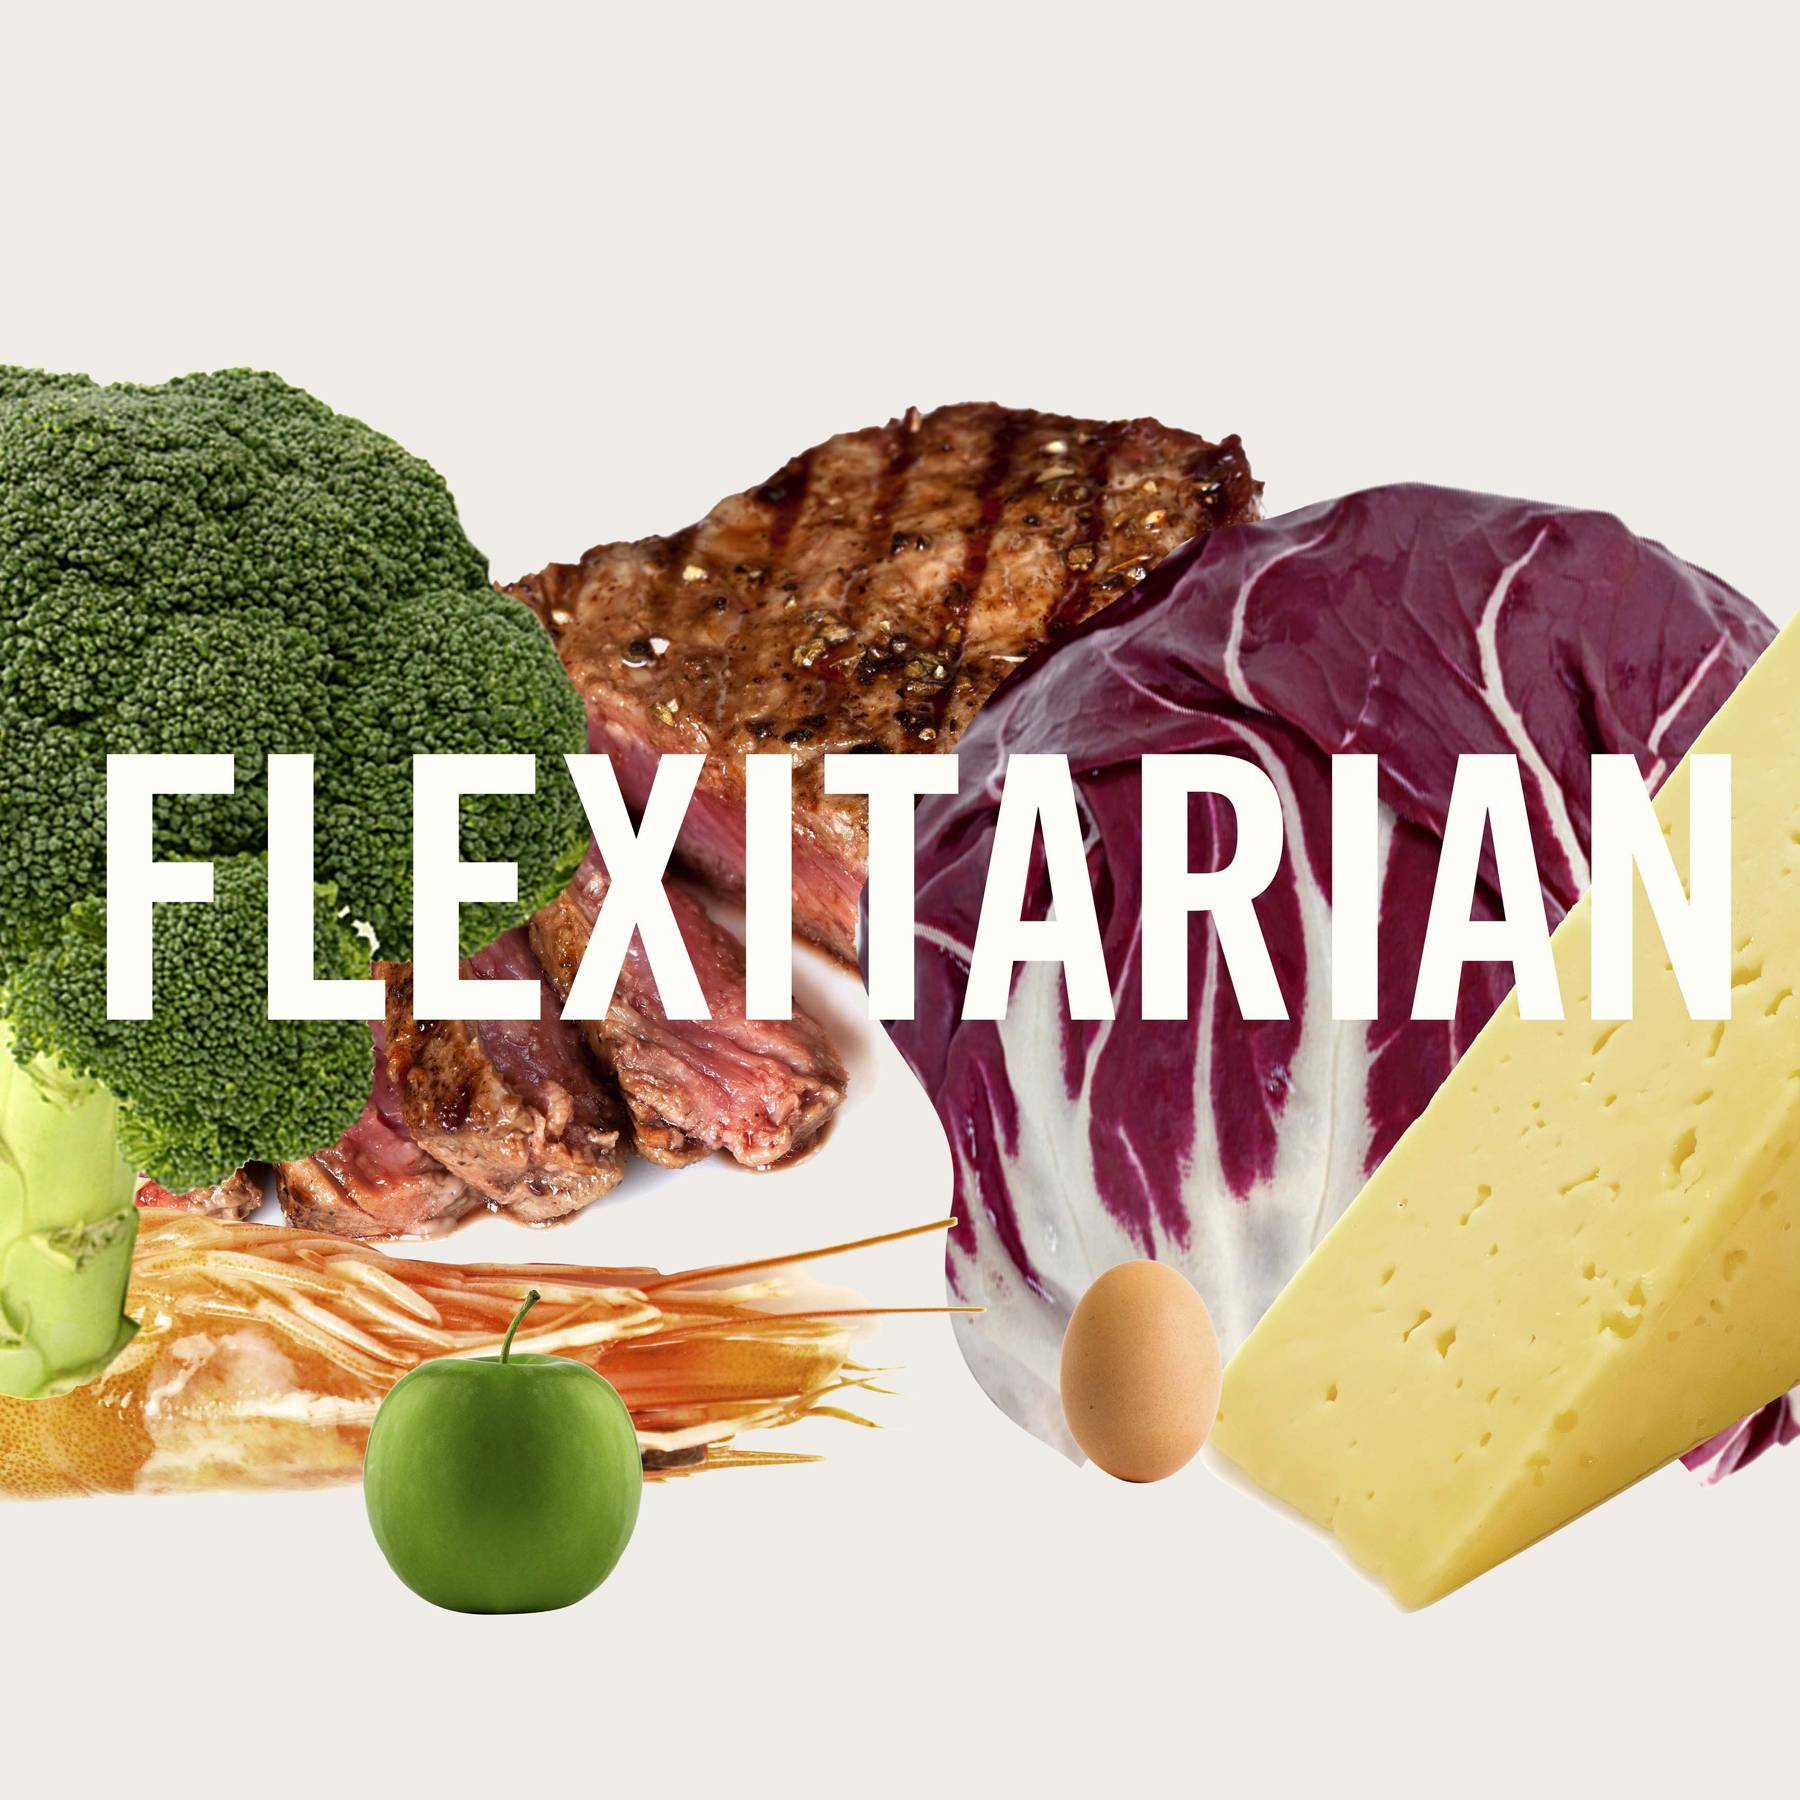 vegetarian recipes for meat eaters flexitarian diet recipes for people who cant give up meat volume one english edition